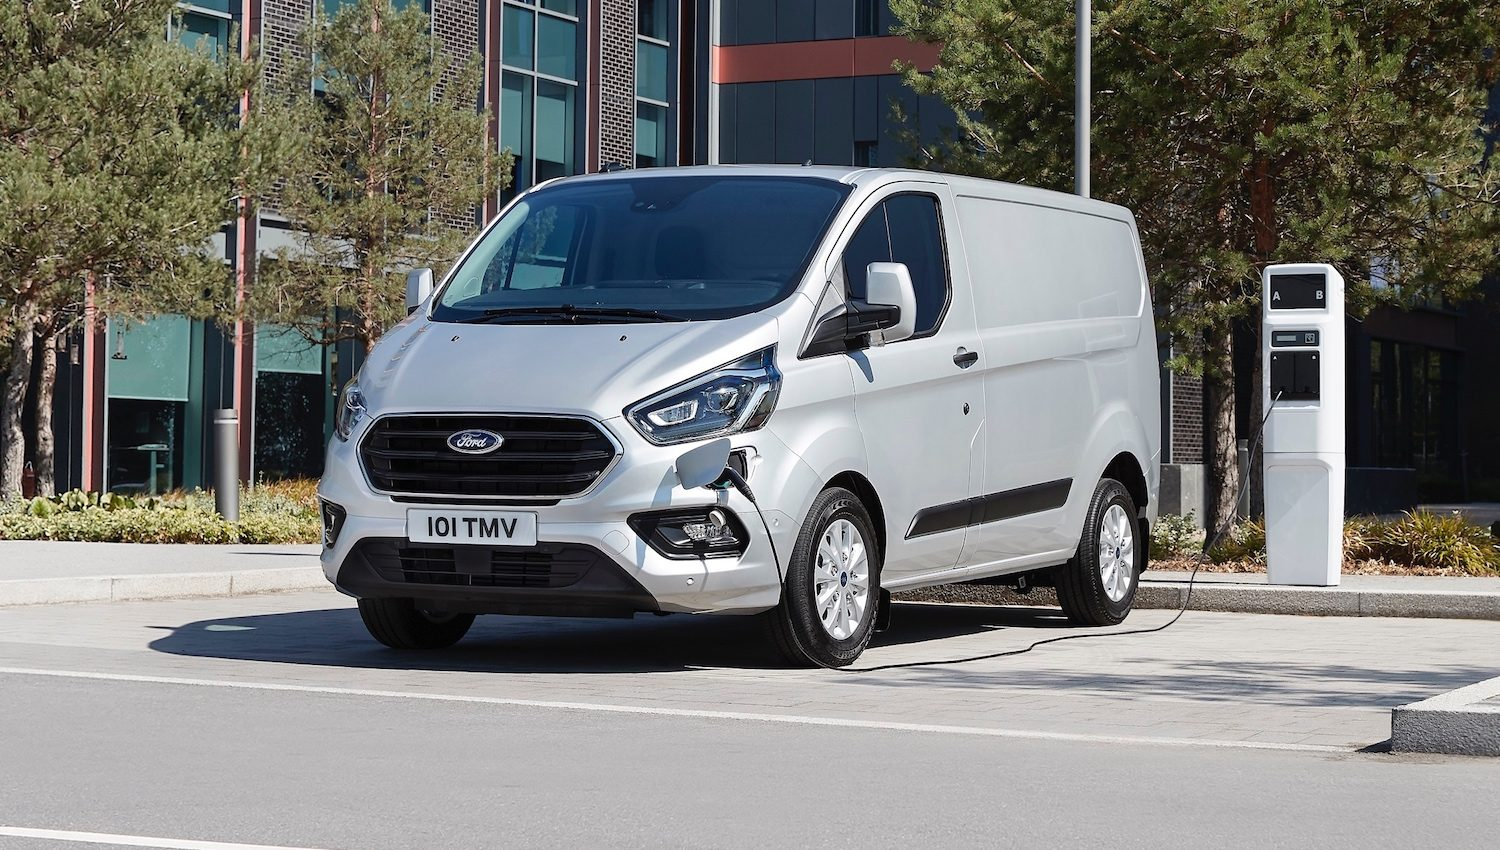 Ford Transit Custom Plug-in Hybrid (PHEV)